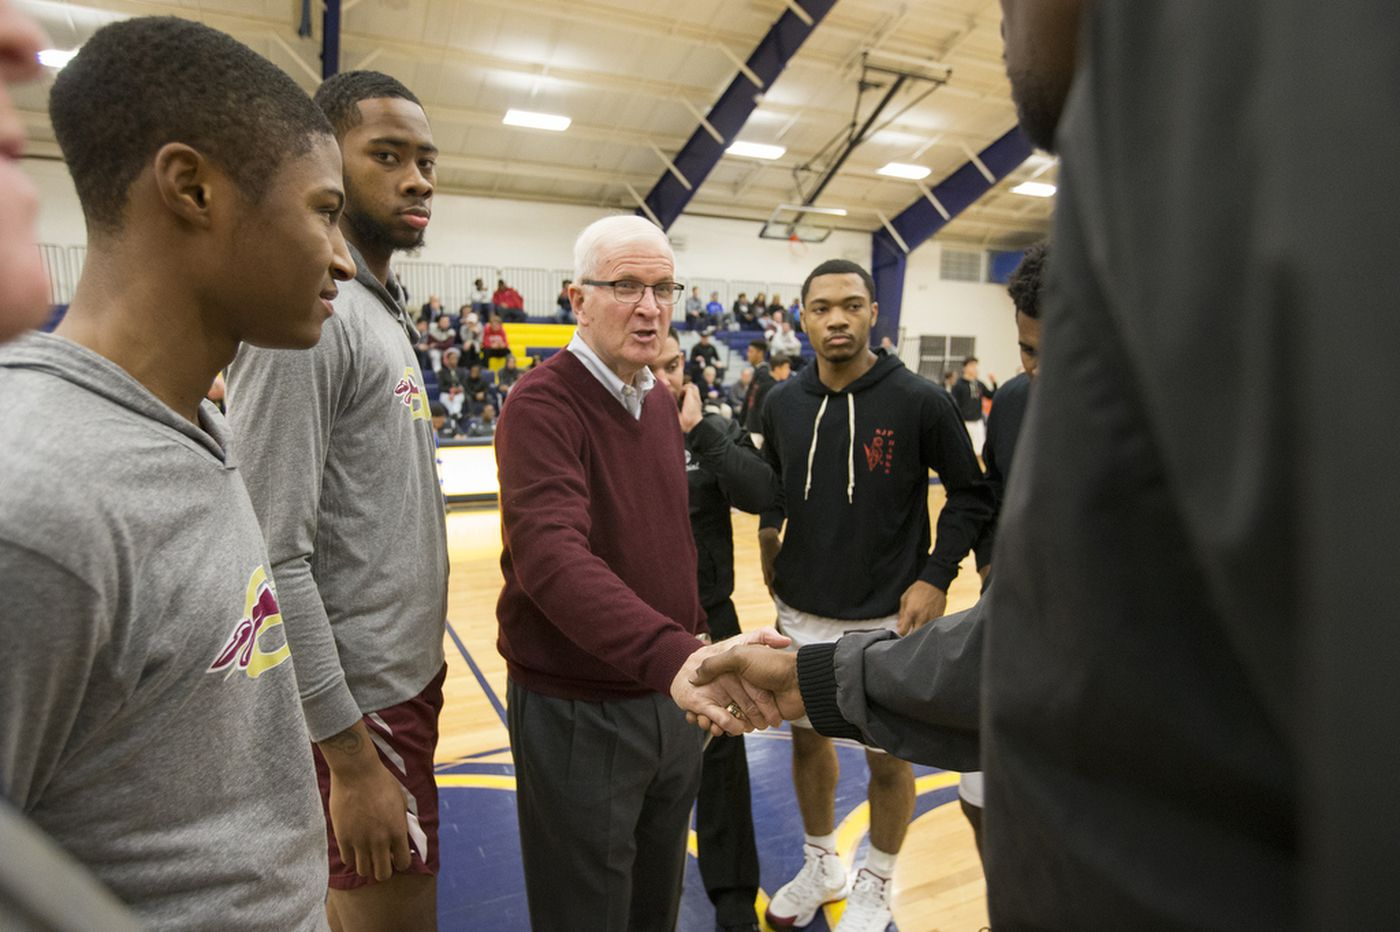 St. Joe's Prep basketball coach Speedy Morris, a Philly legend, to retire at end of season